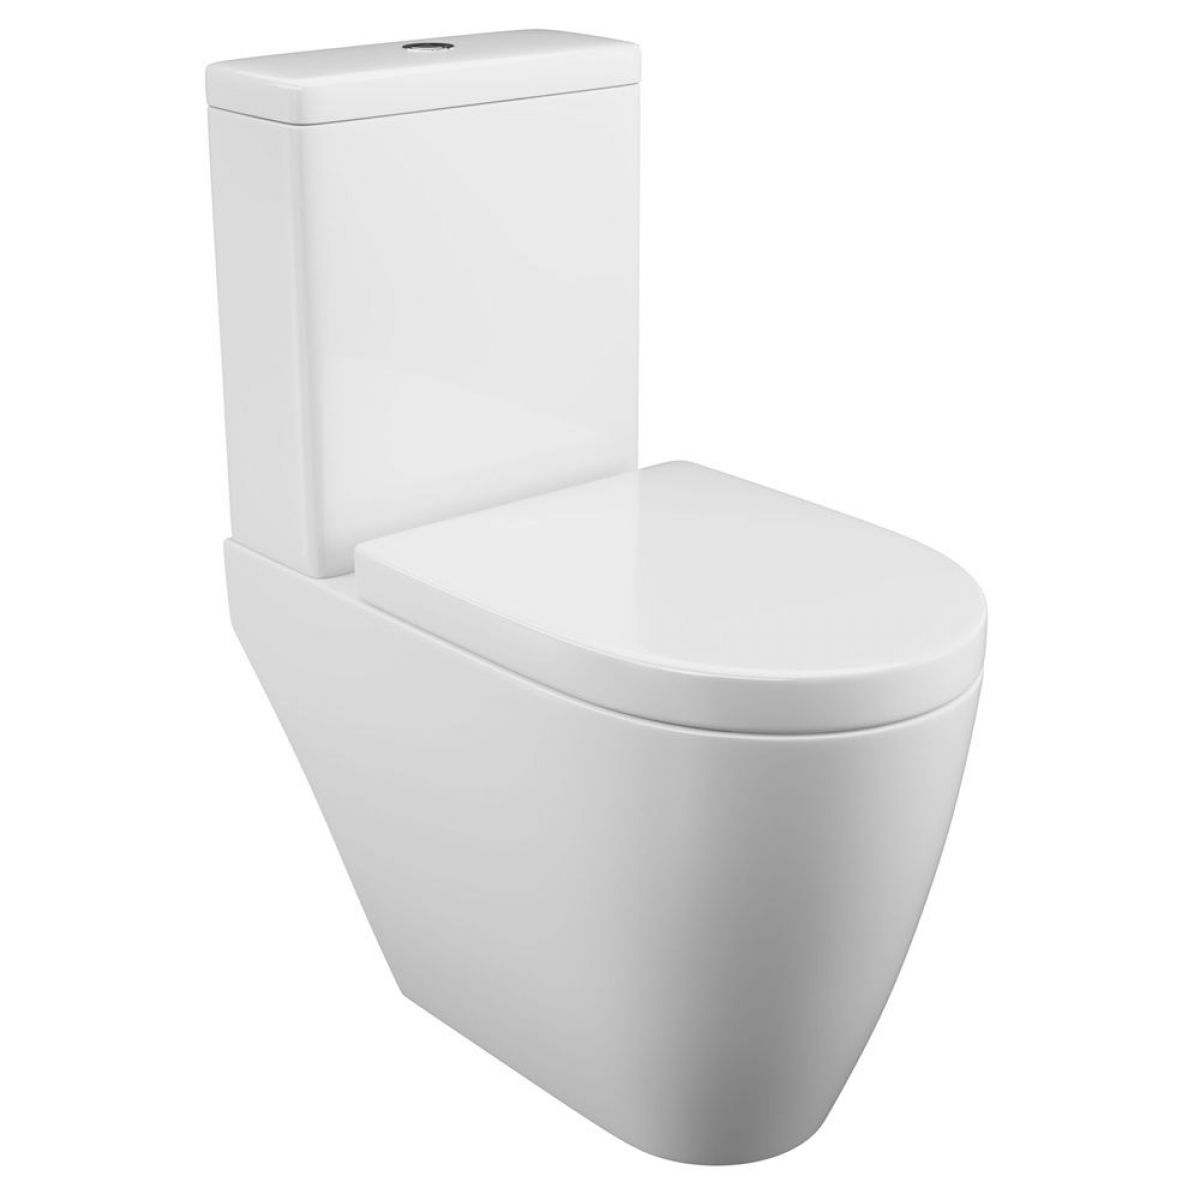 Cassellie Loxley Close Coupled Toilet with Wrapover Seat